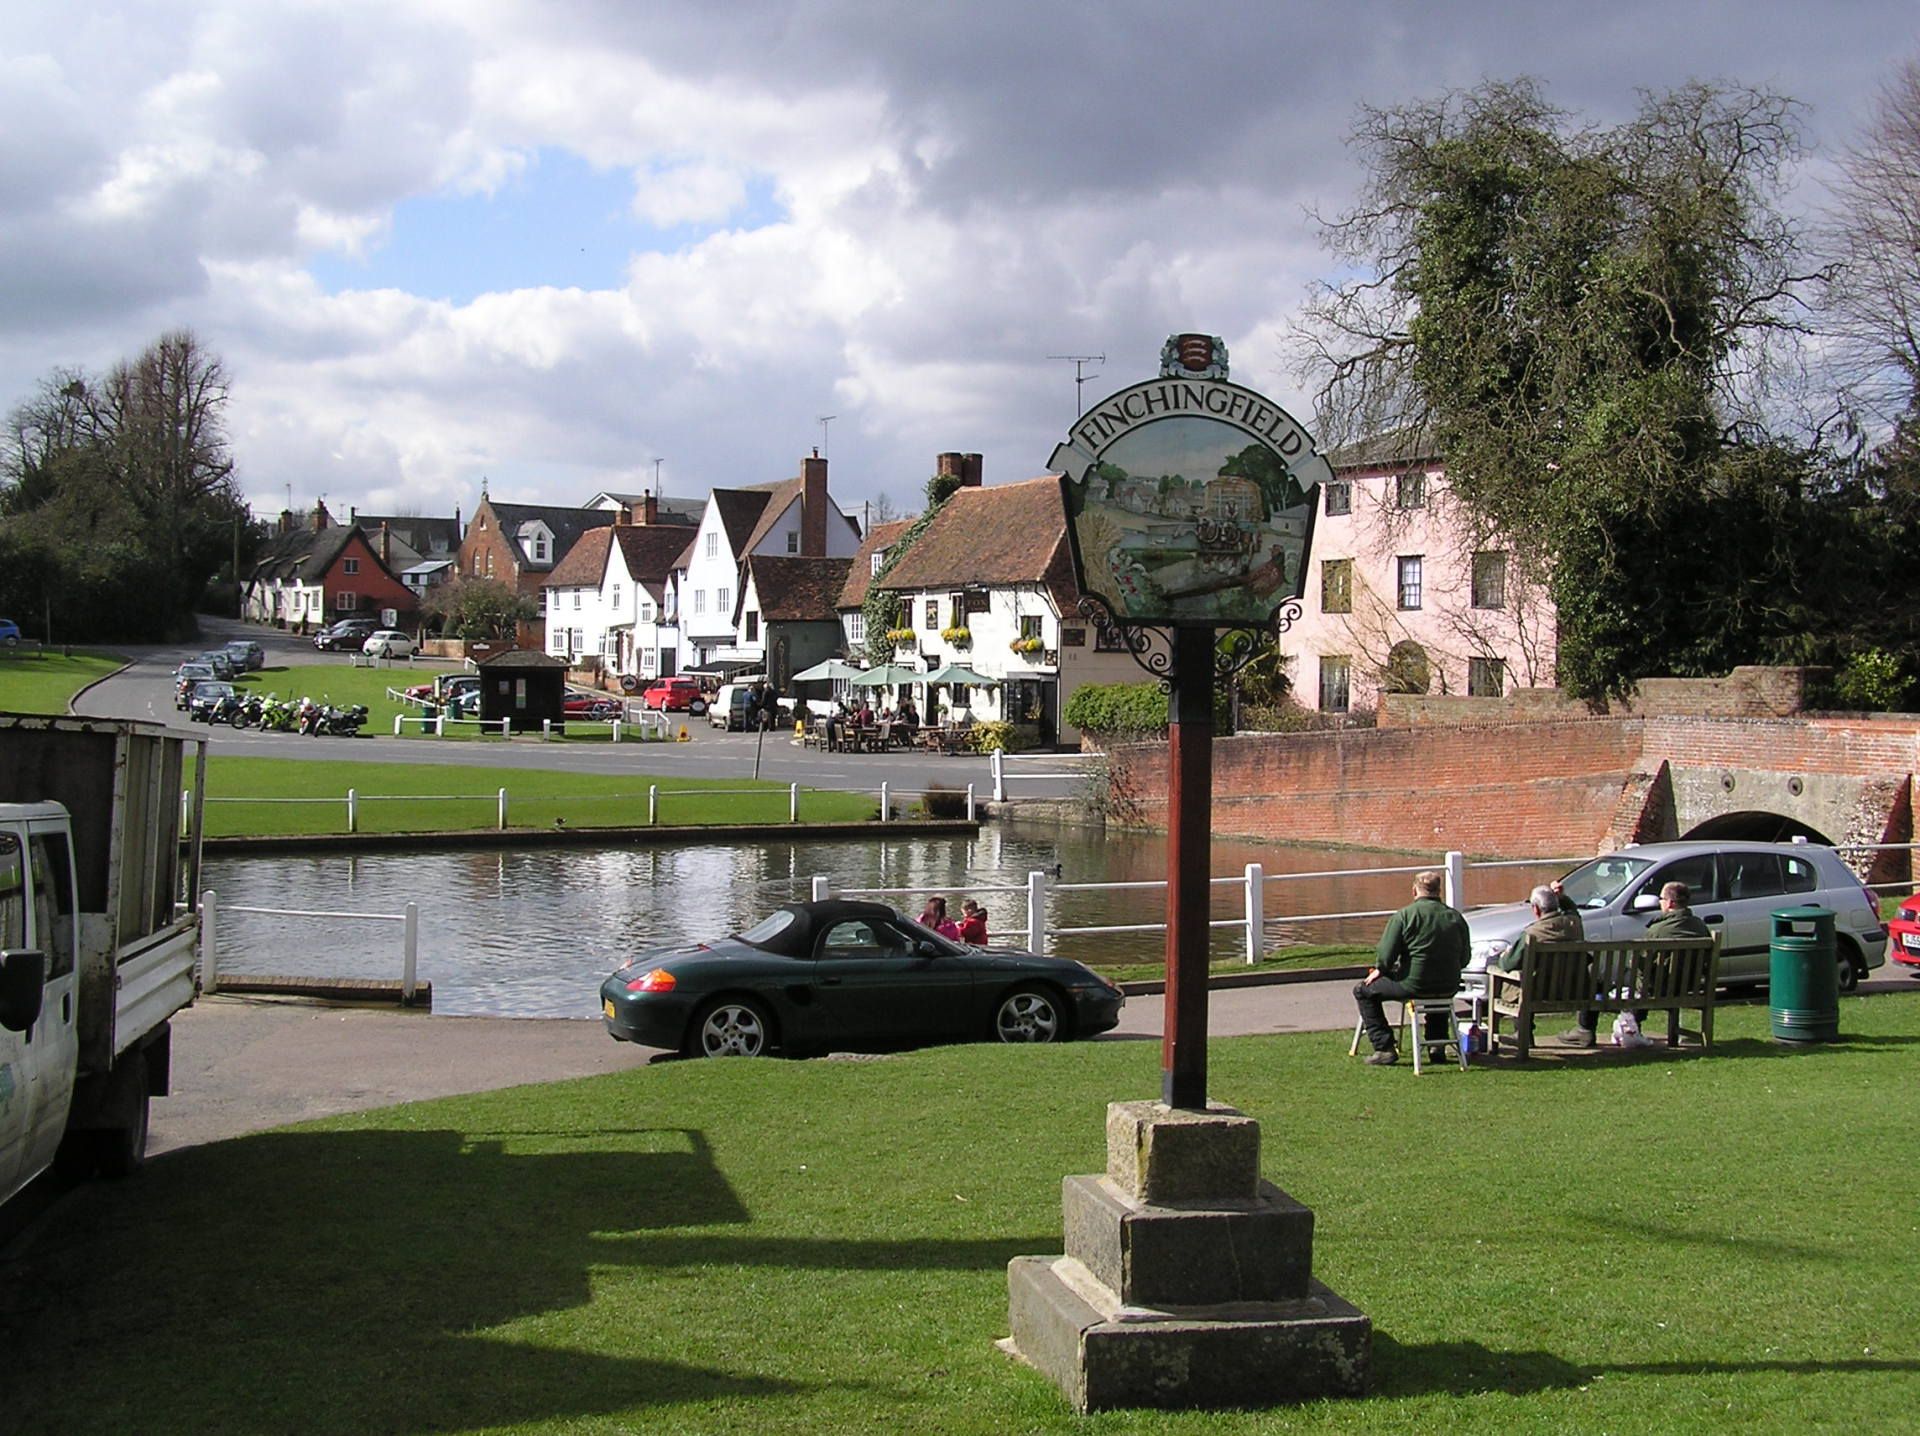 The Fox Inn Finchingfield